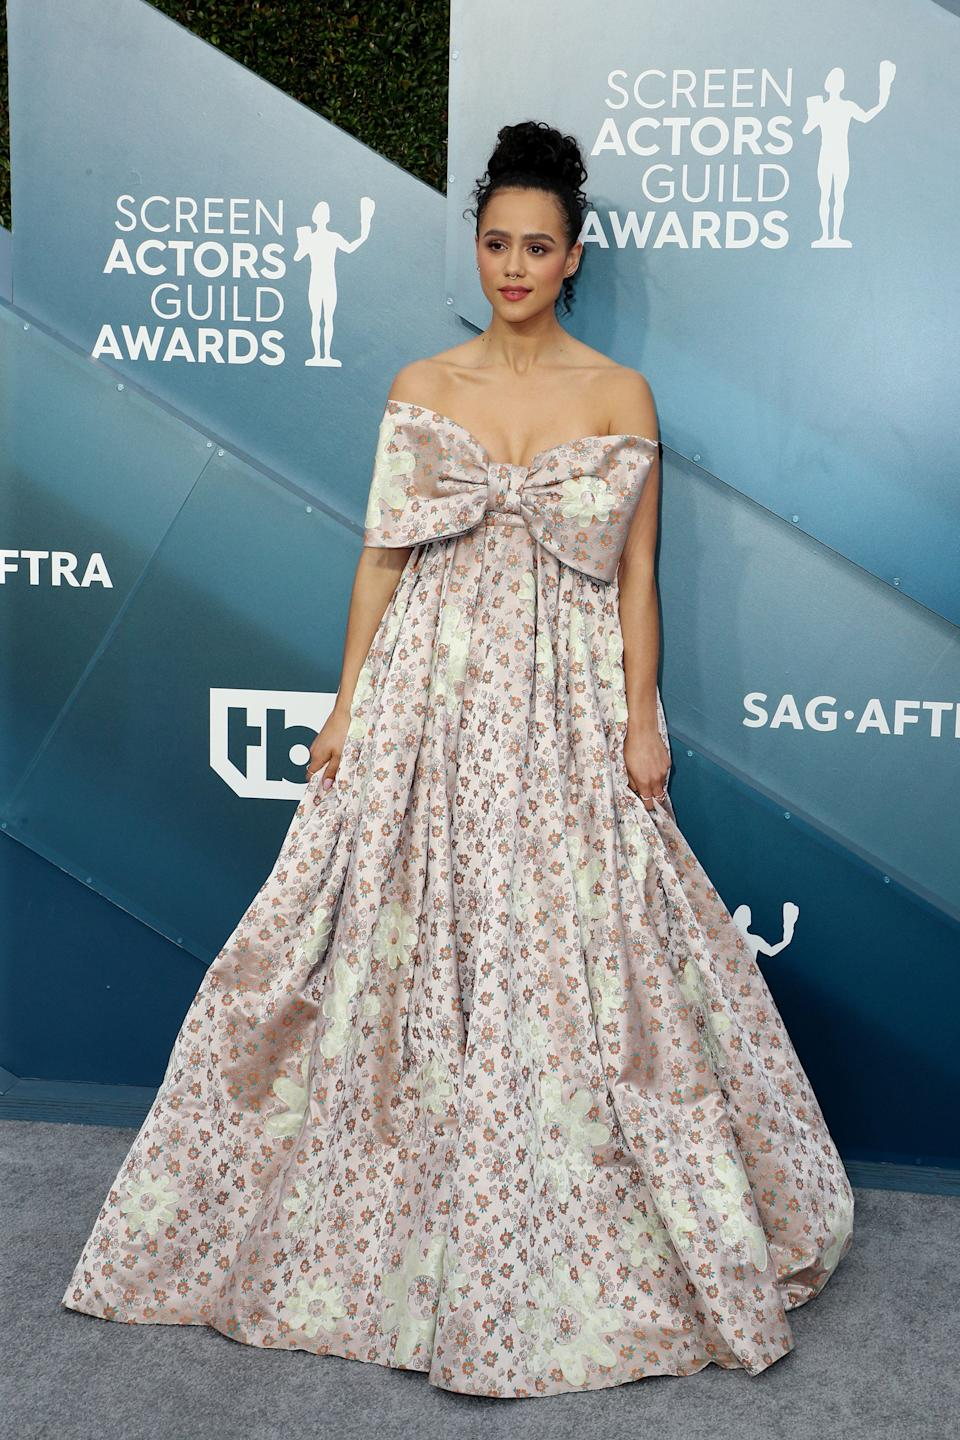 """<h2>Nathalie Emmanuel in Miu Miu<br></h2><br>We're still not over losing Missandei on Game of Thrones, but at least we have Nathalie Emmanuel in Miu Miu to make up for the loss. <span class=""""copyright"""">Photo: John Salangsang/Variety/Shutterstock.</span>"""